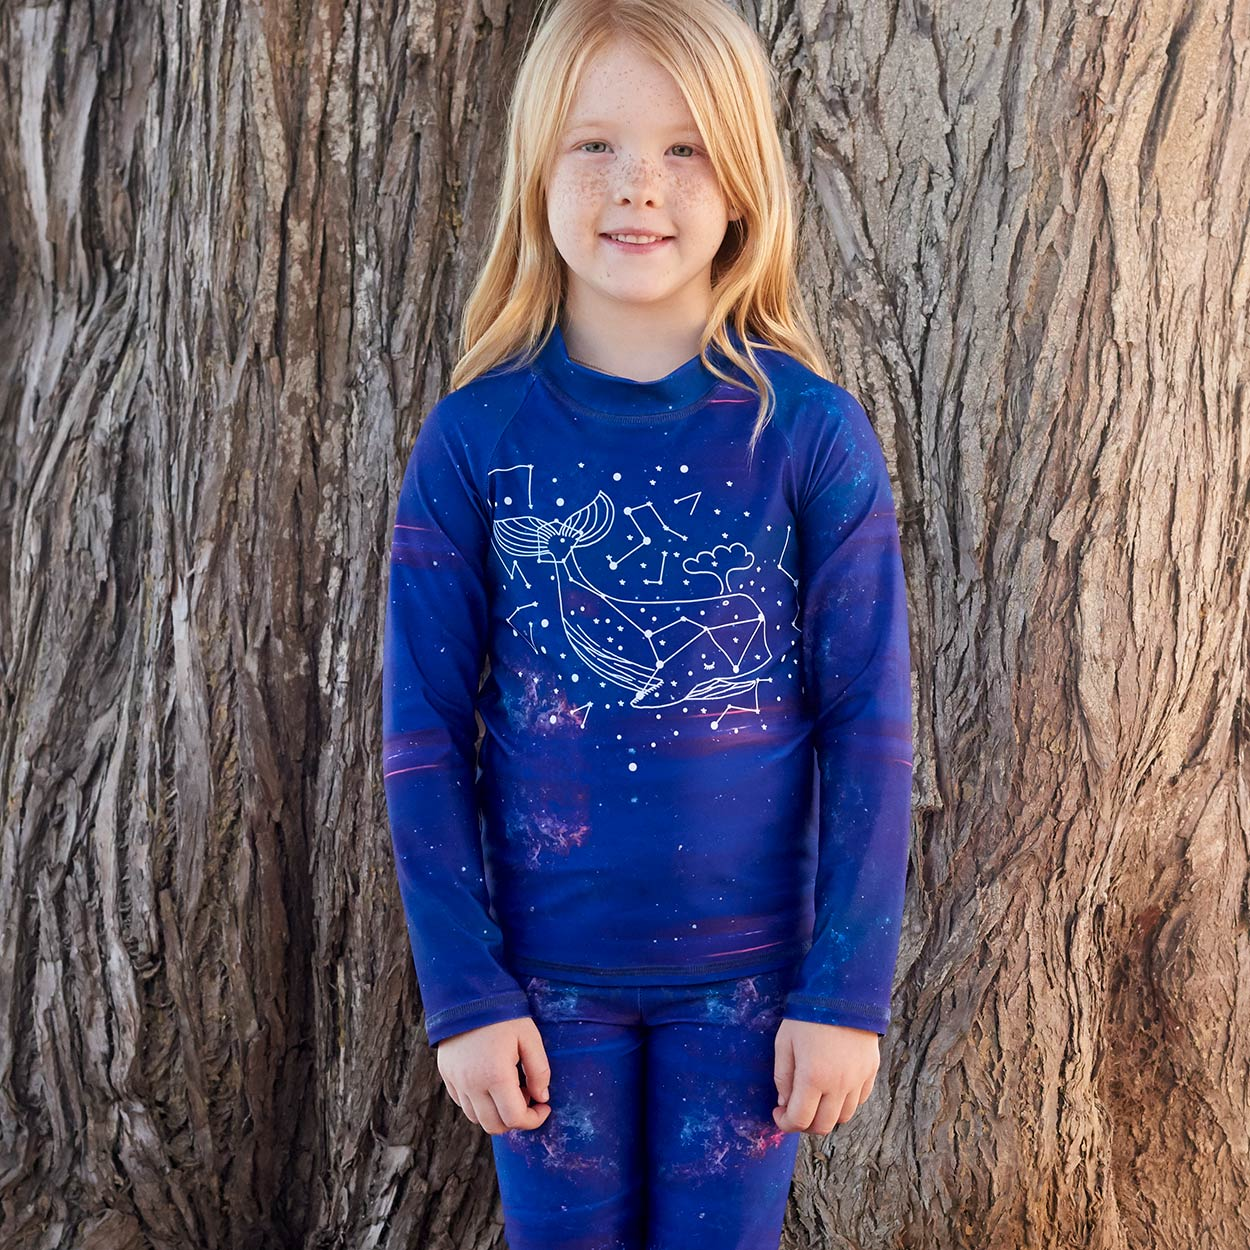 Whale Long Sleeve Rash Guard Top Upf50 Kids Boys Girls Size 2 12 Purple Unisex Cetus Constellations Cosmos Little Girl With Freckles Standing Against A Brown Tree Sunpoplife